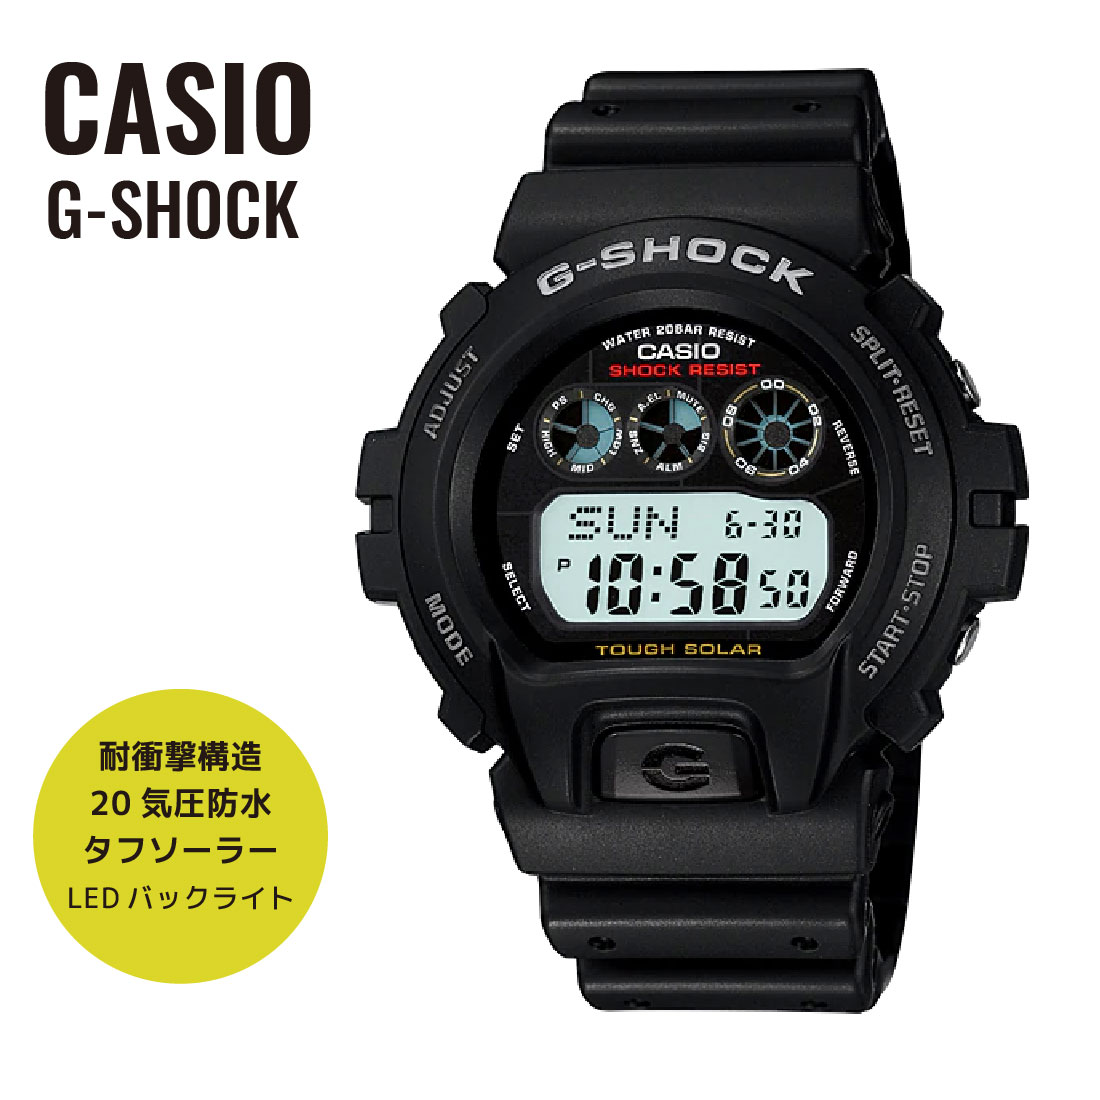 manual for casio g-6900 watch